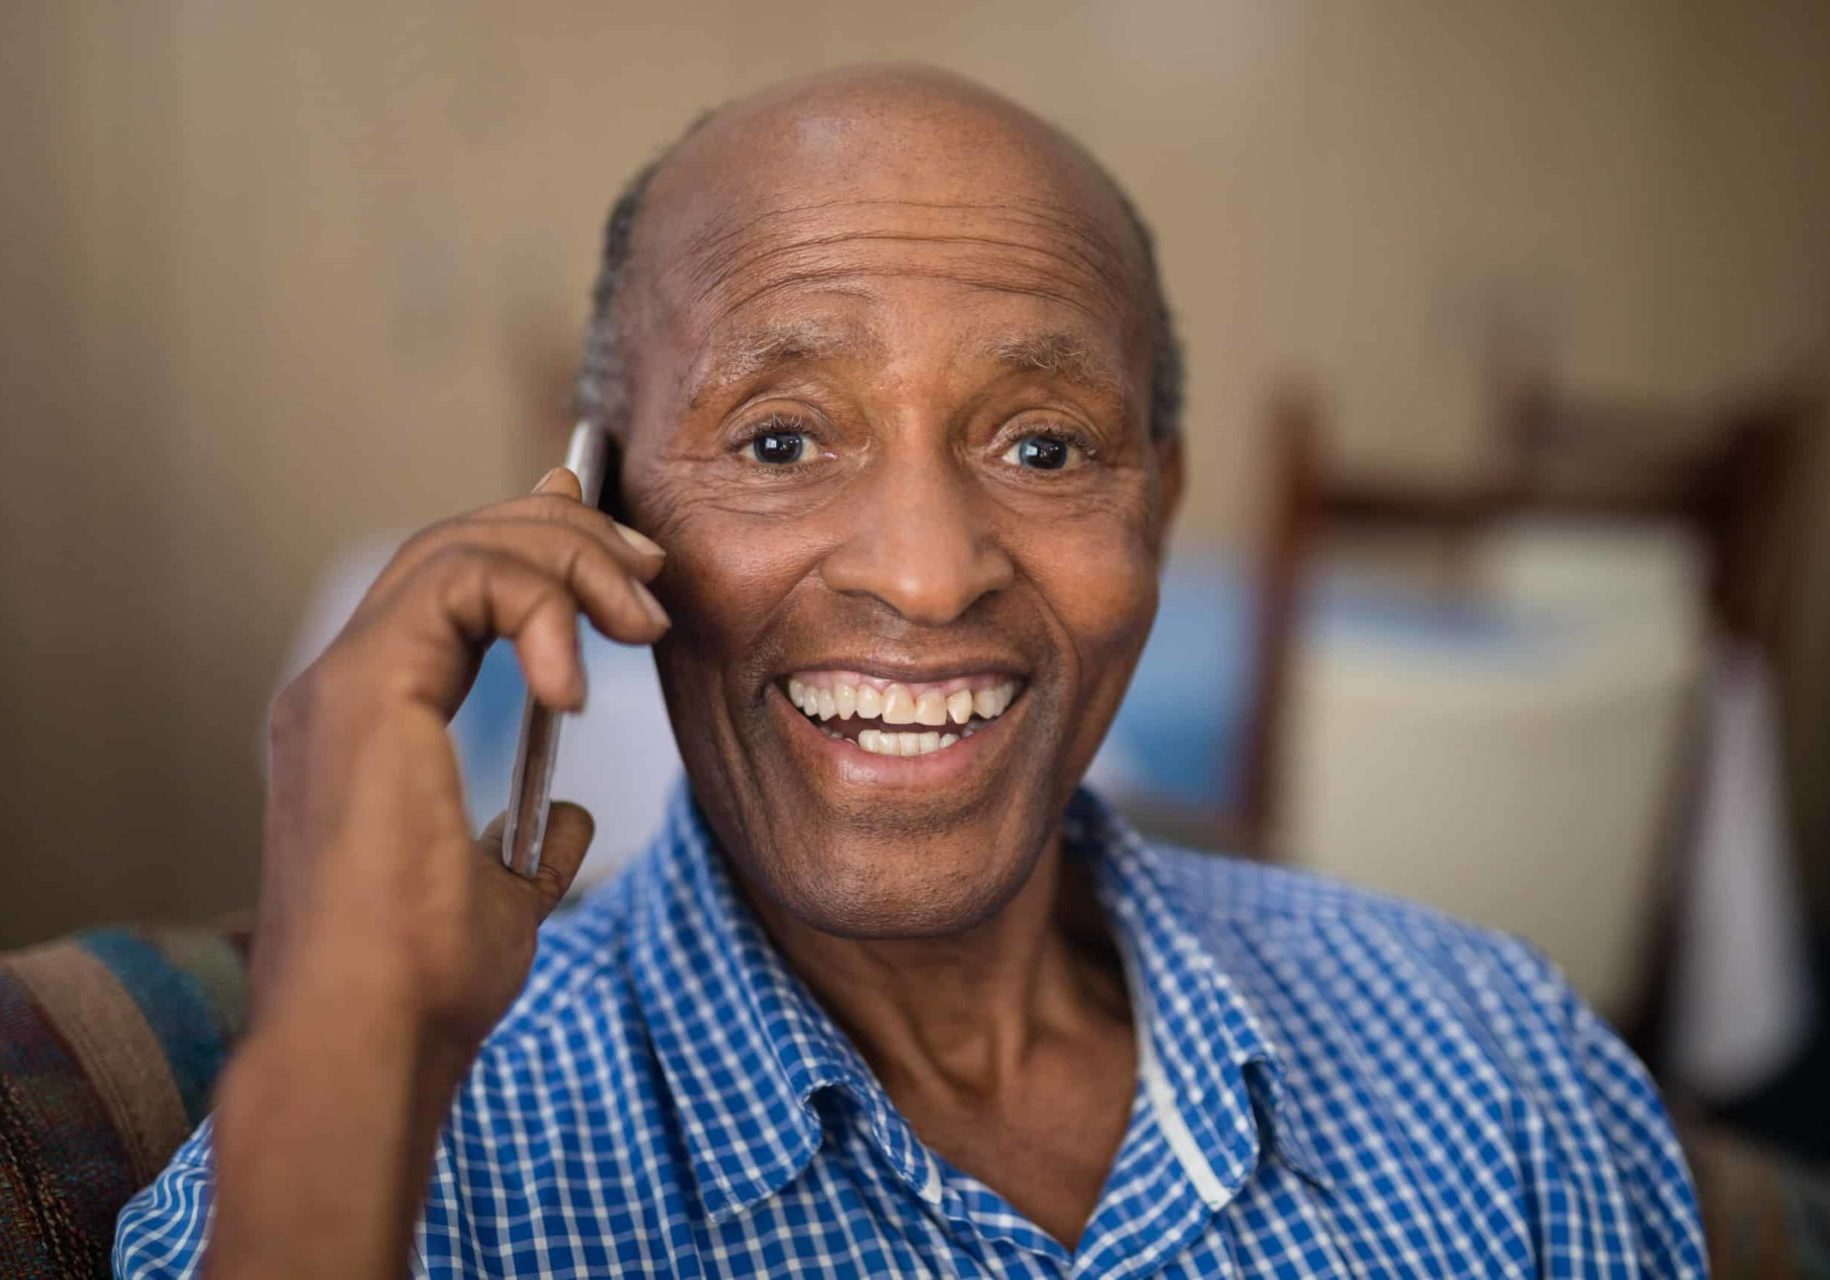 a man smiling and talking on the phone